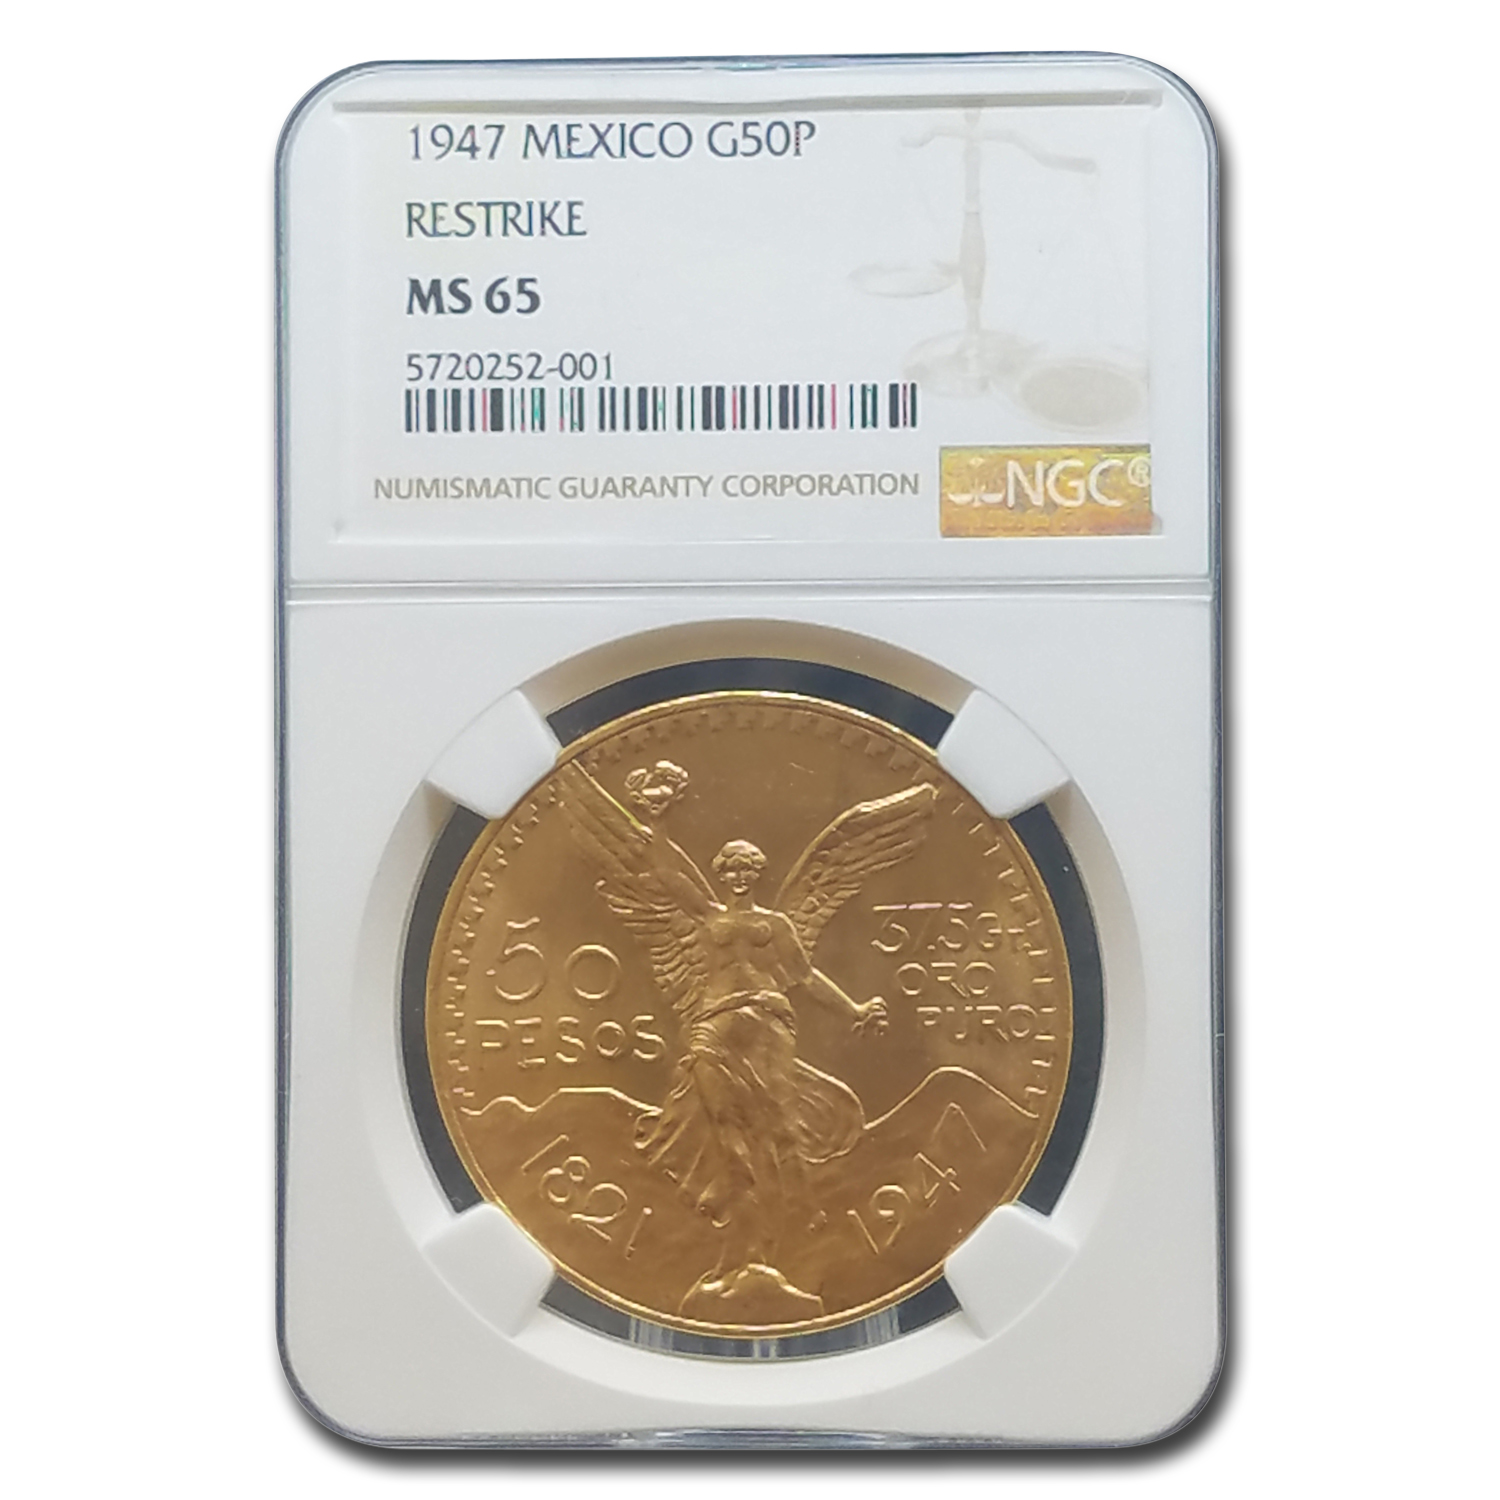 1947 Mexico Gold 50 Pesos MS-65 NGC